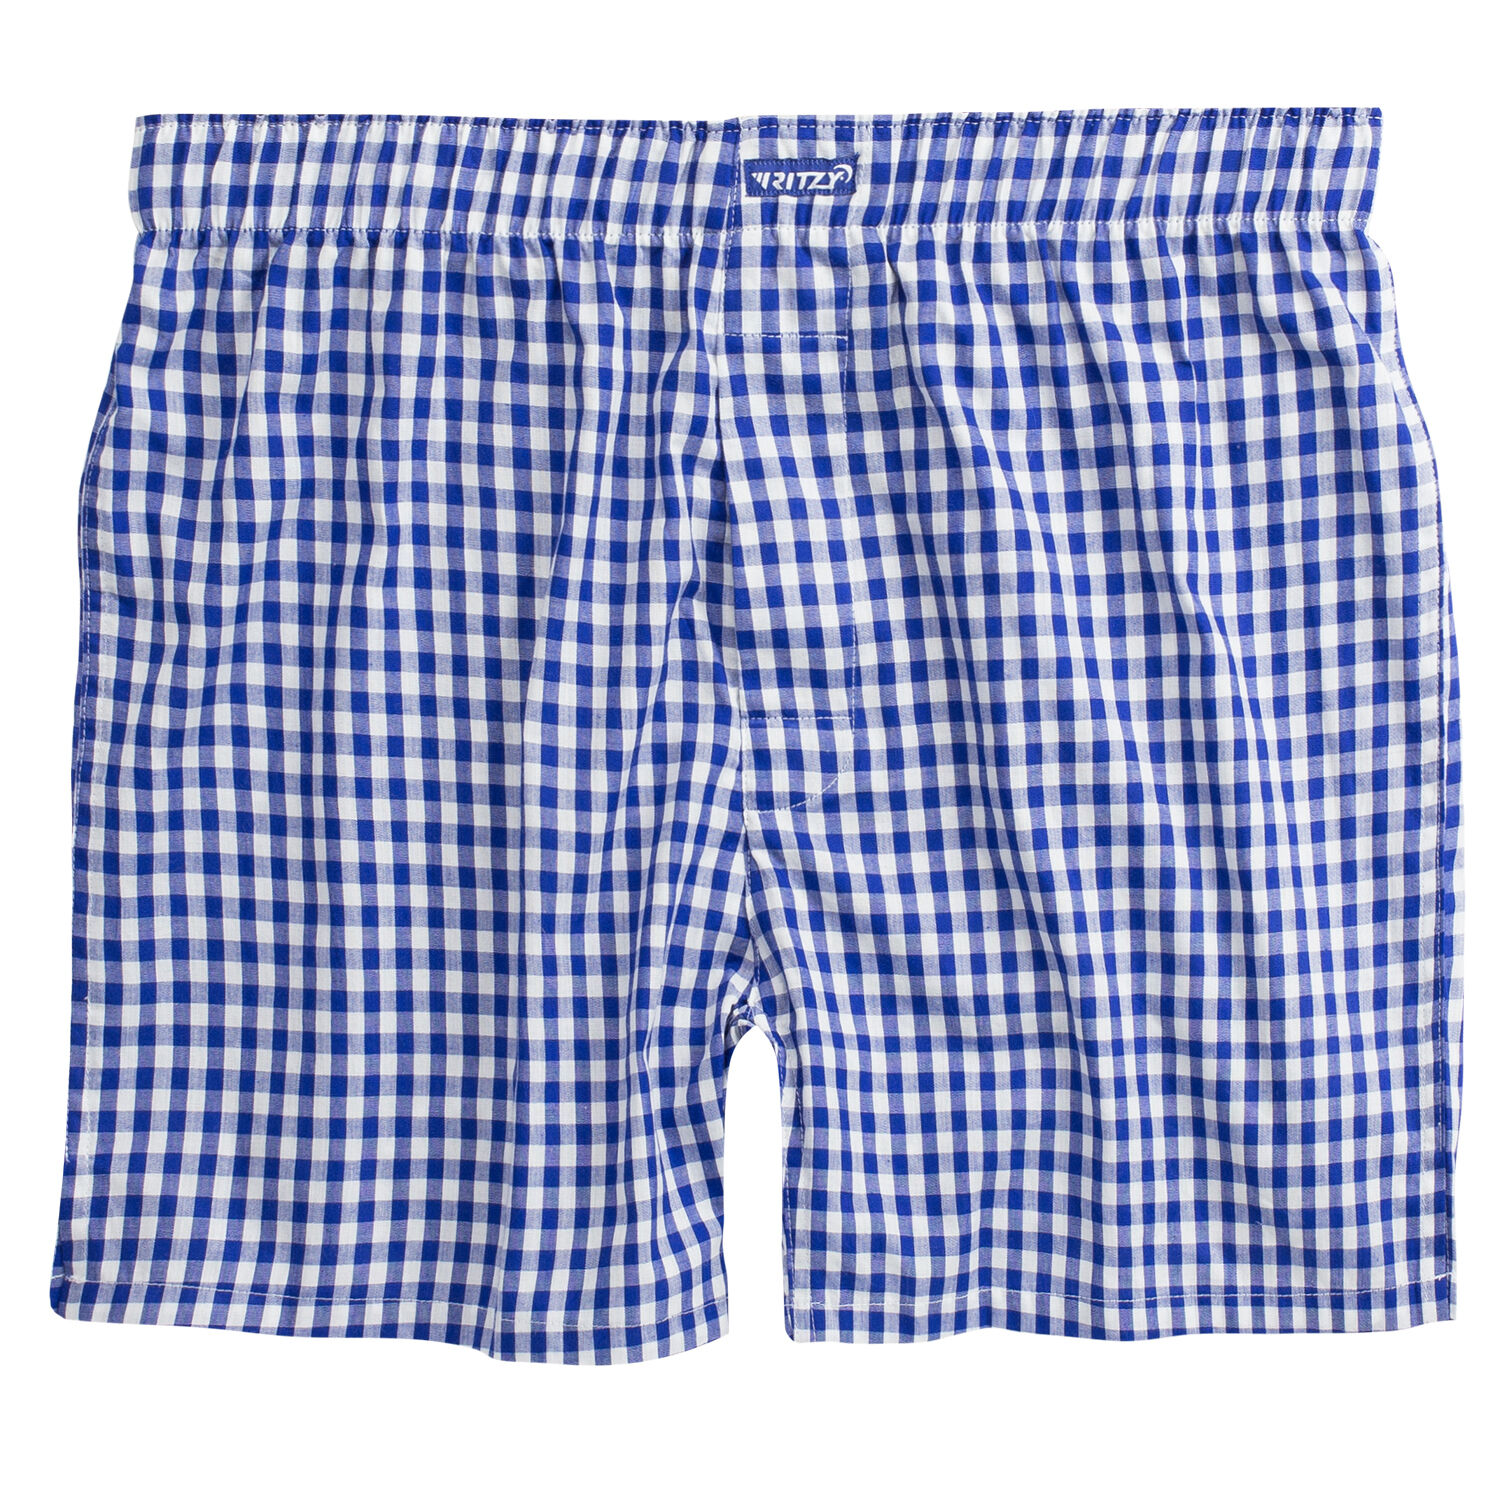 Ritzy Men's Boxer Shorts Underwear 100% Cotton Poplin Plaid Yarn Dyed Woven Clothing, Shoes & Accessories